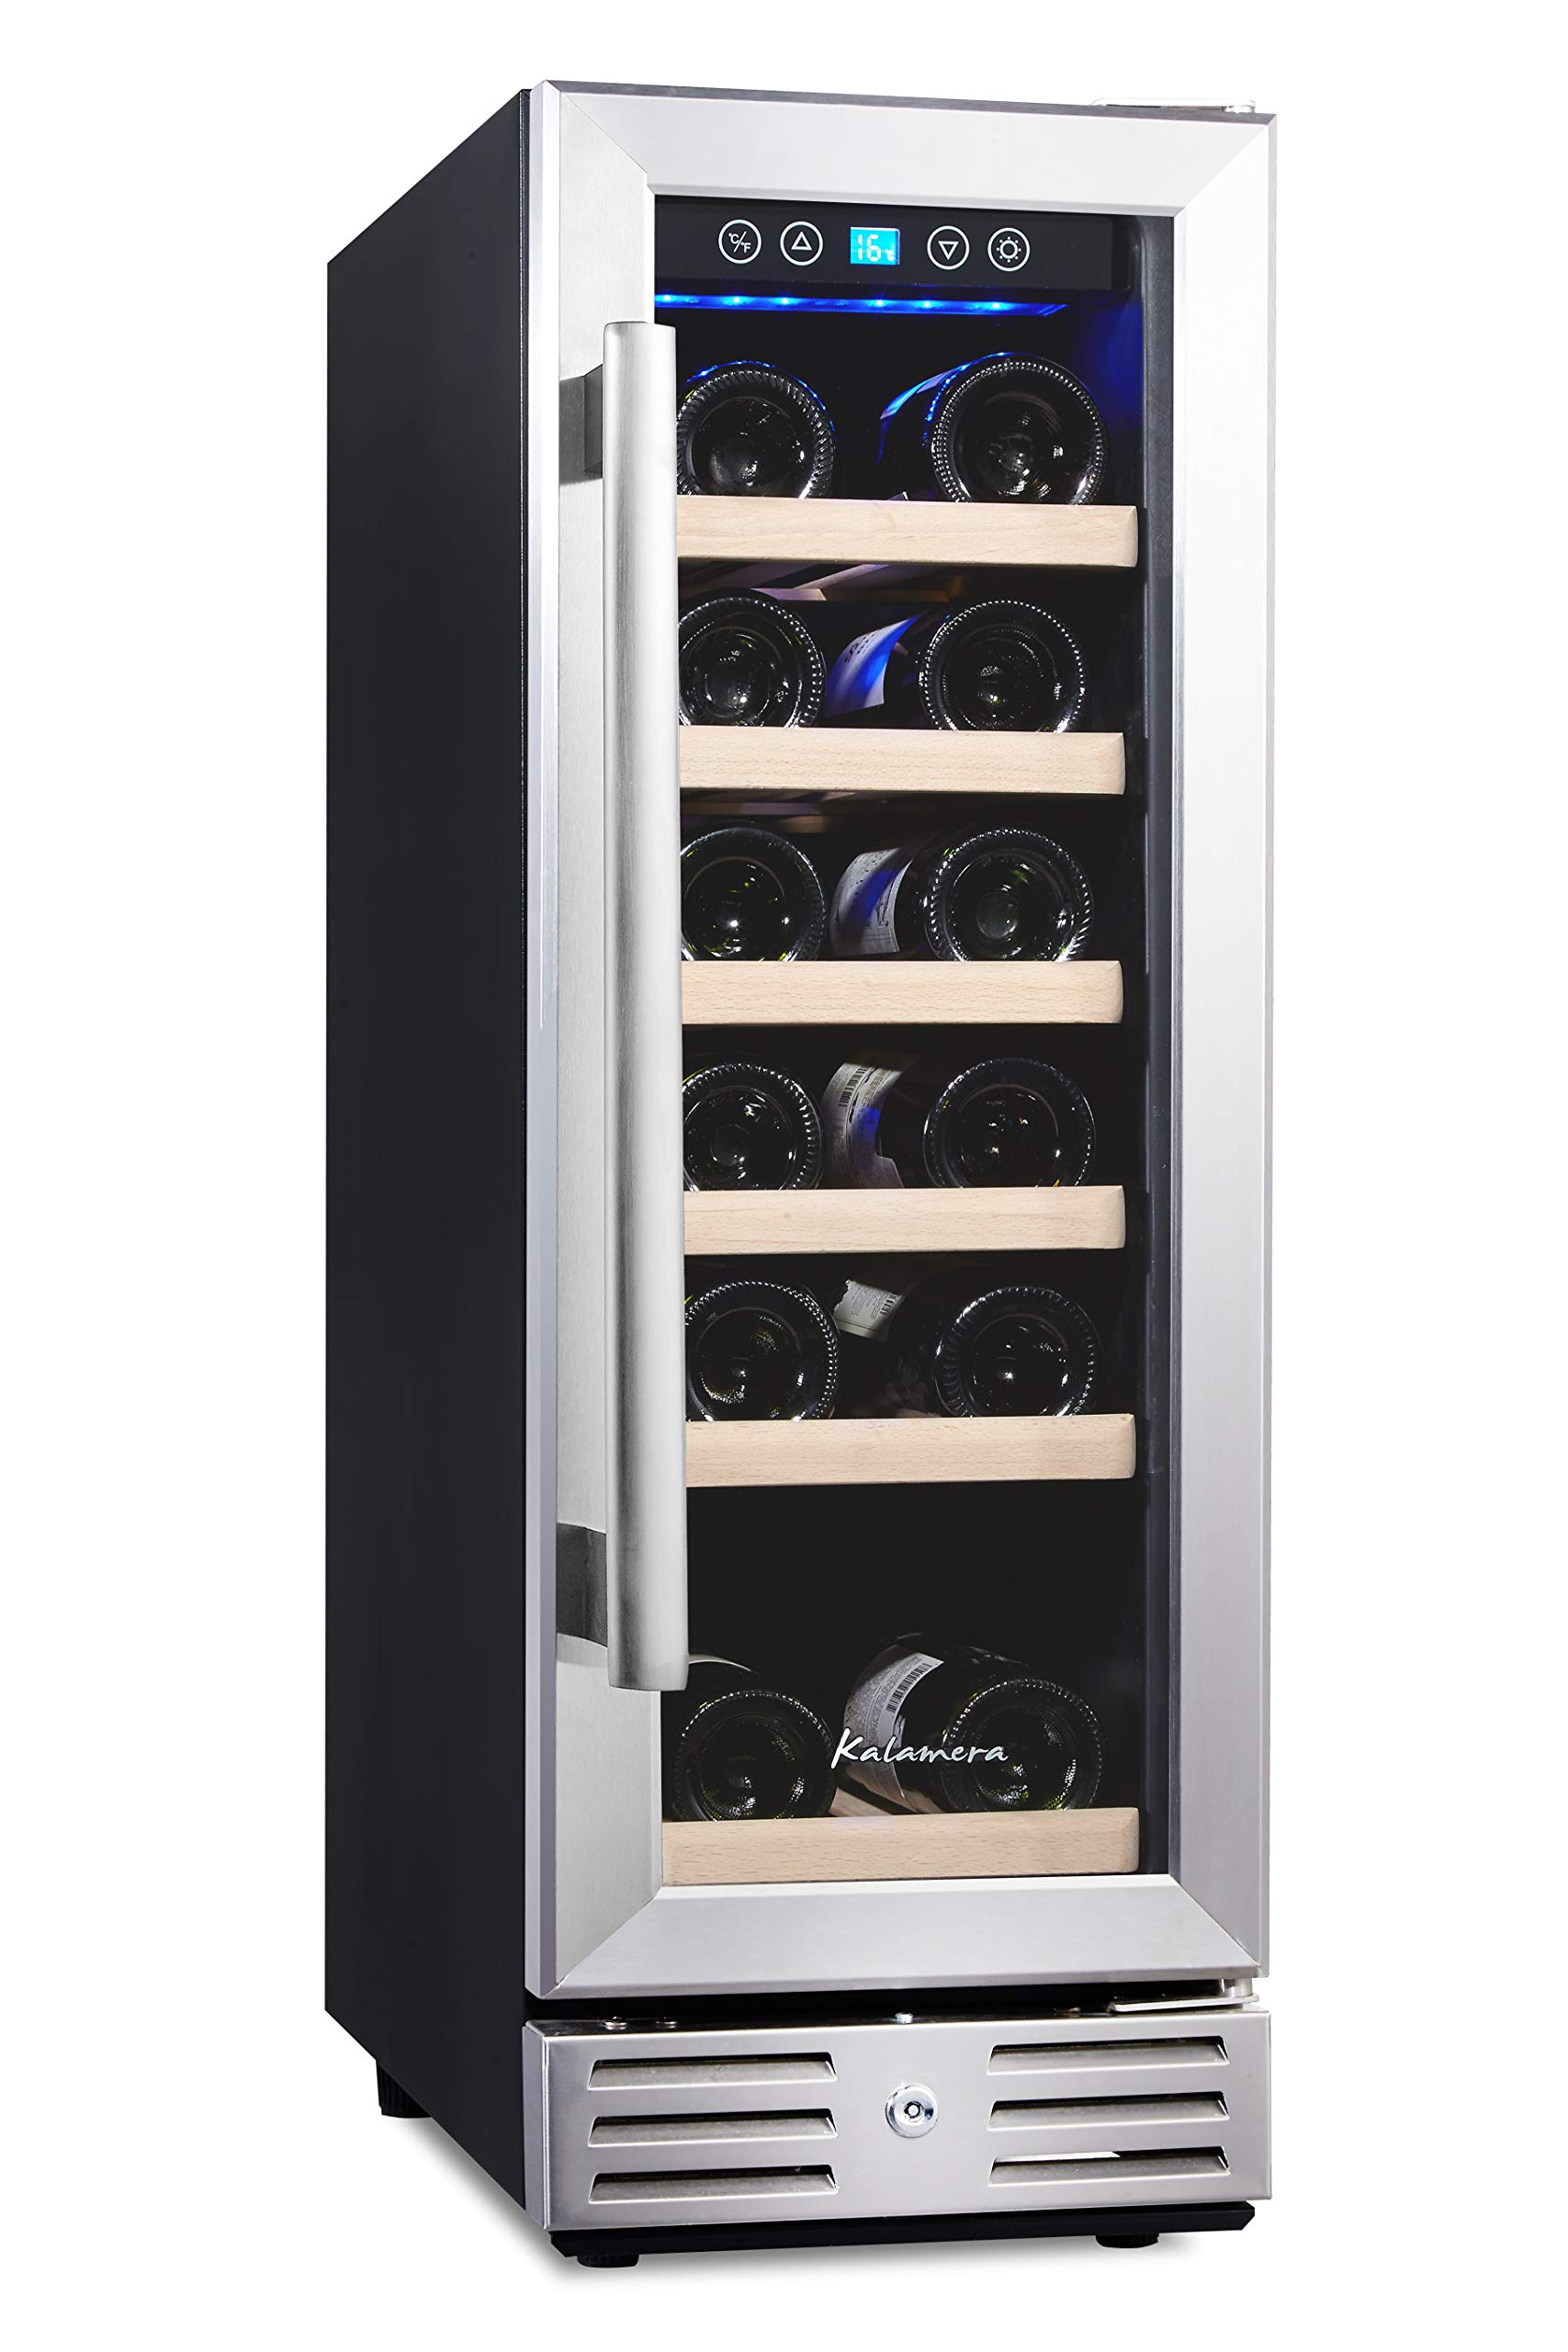 Kalamera 12'' Wine Cooler 18 Bottle Built-in or Freestanding with Stainless Steel & Double-Layer Tempered Glass Door and Temperature Memory Function by Kalamera